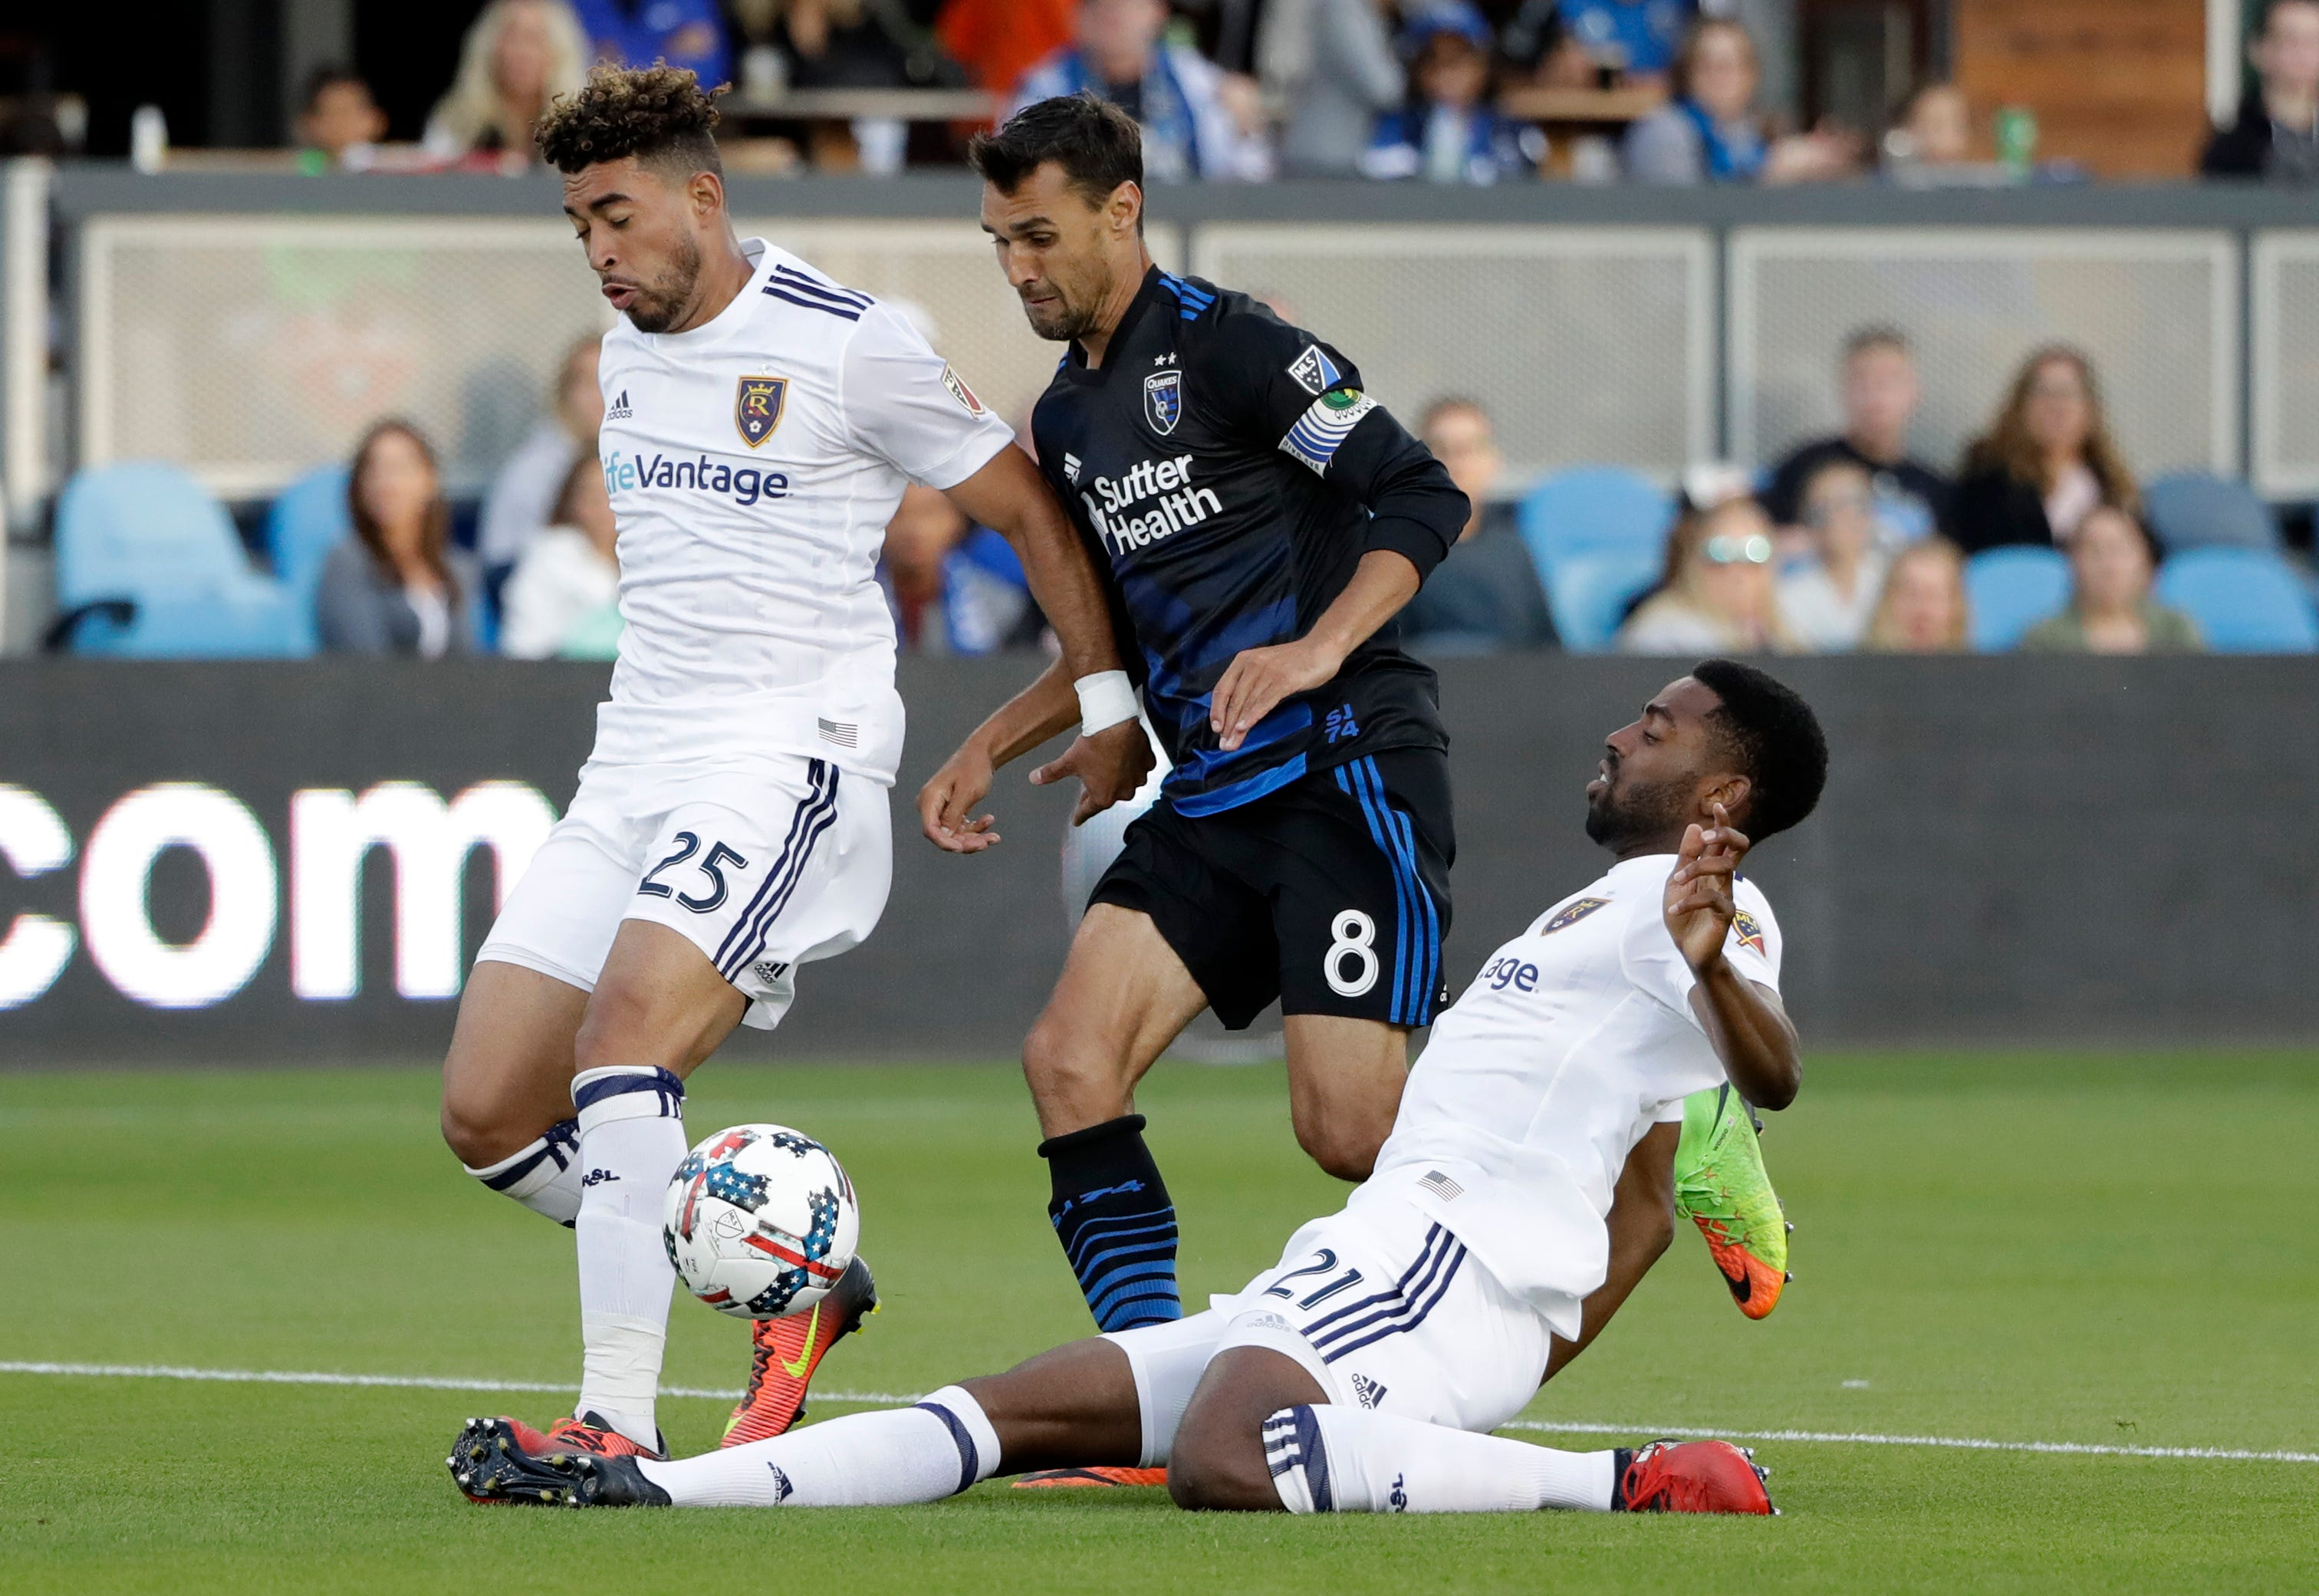 Hoesen leads Quakes past Real Salt Lake with goal, assist